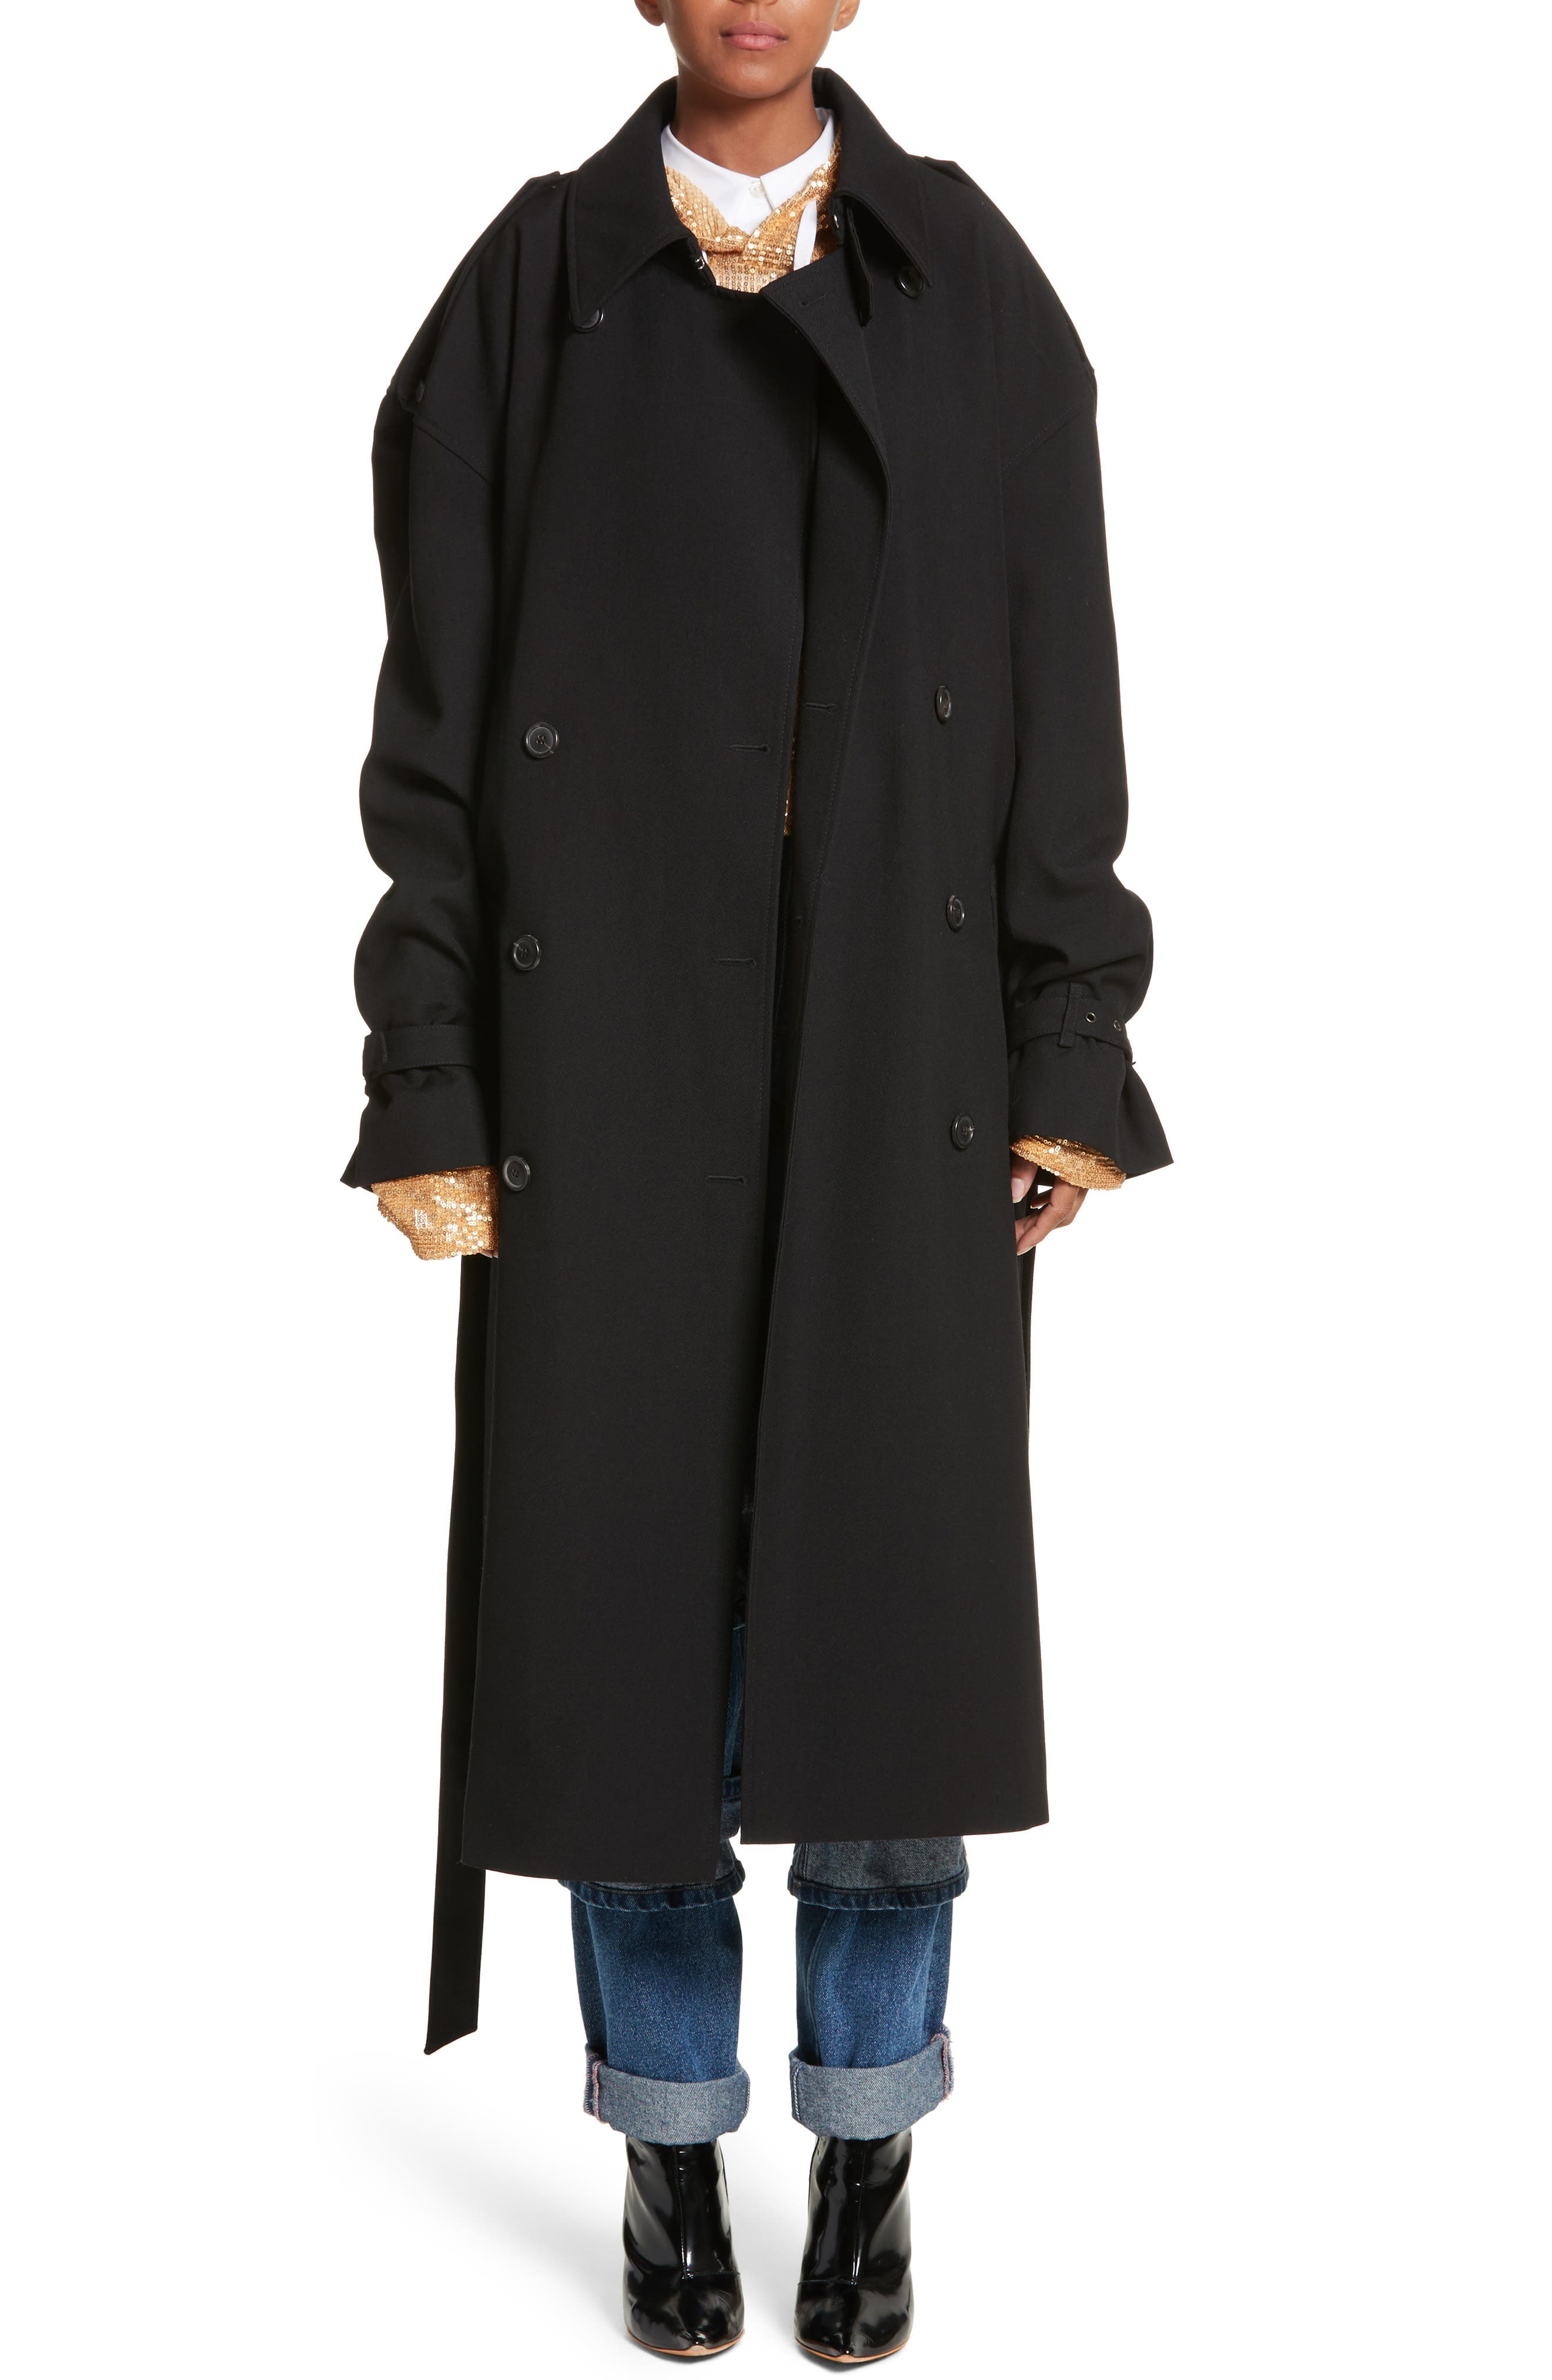 Y/PROJECT Double Breasted Wool Coat